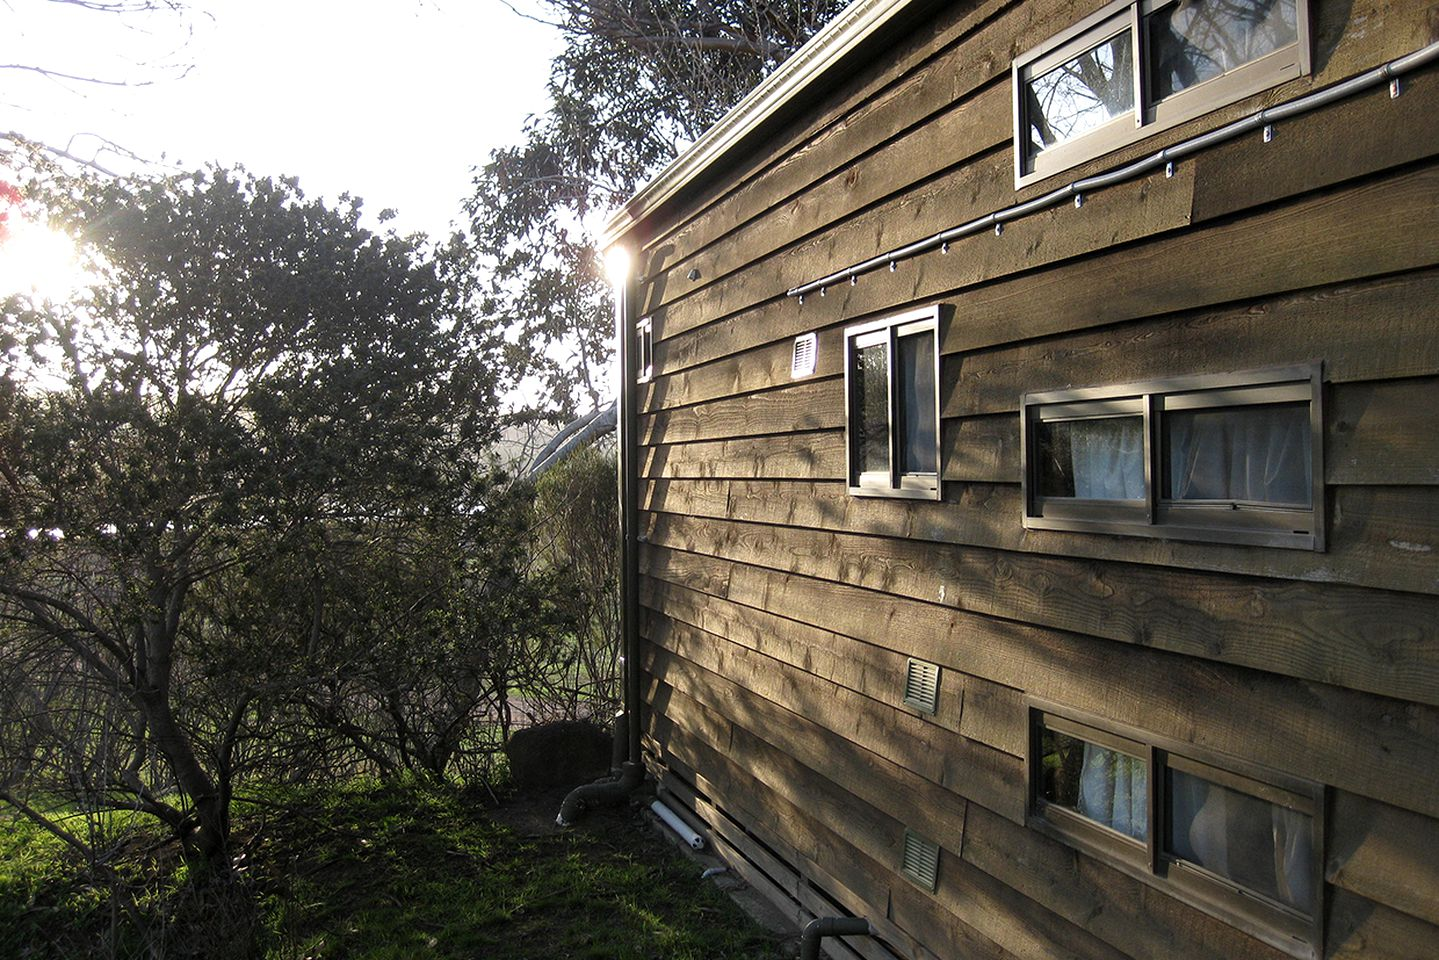 Cabins (Good Hope, New South Wales, Australia)